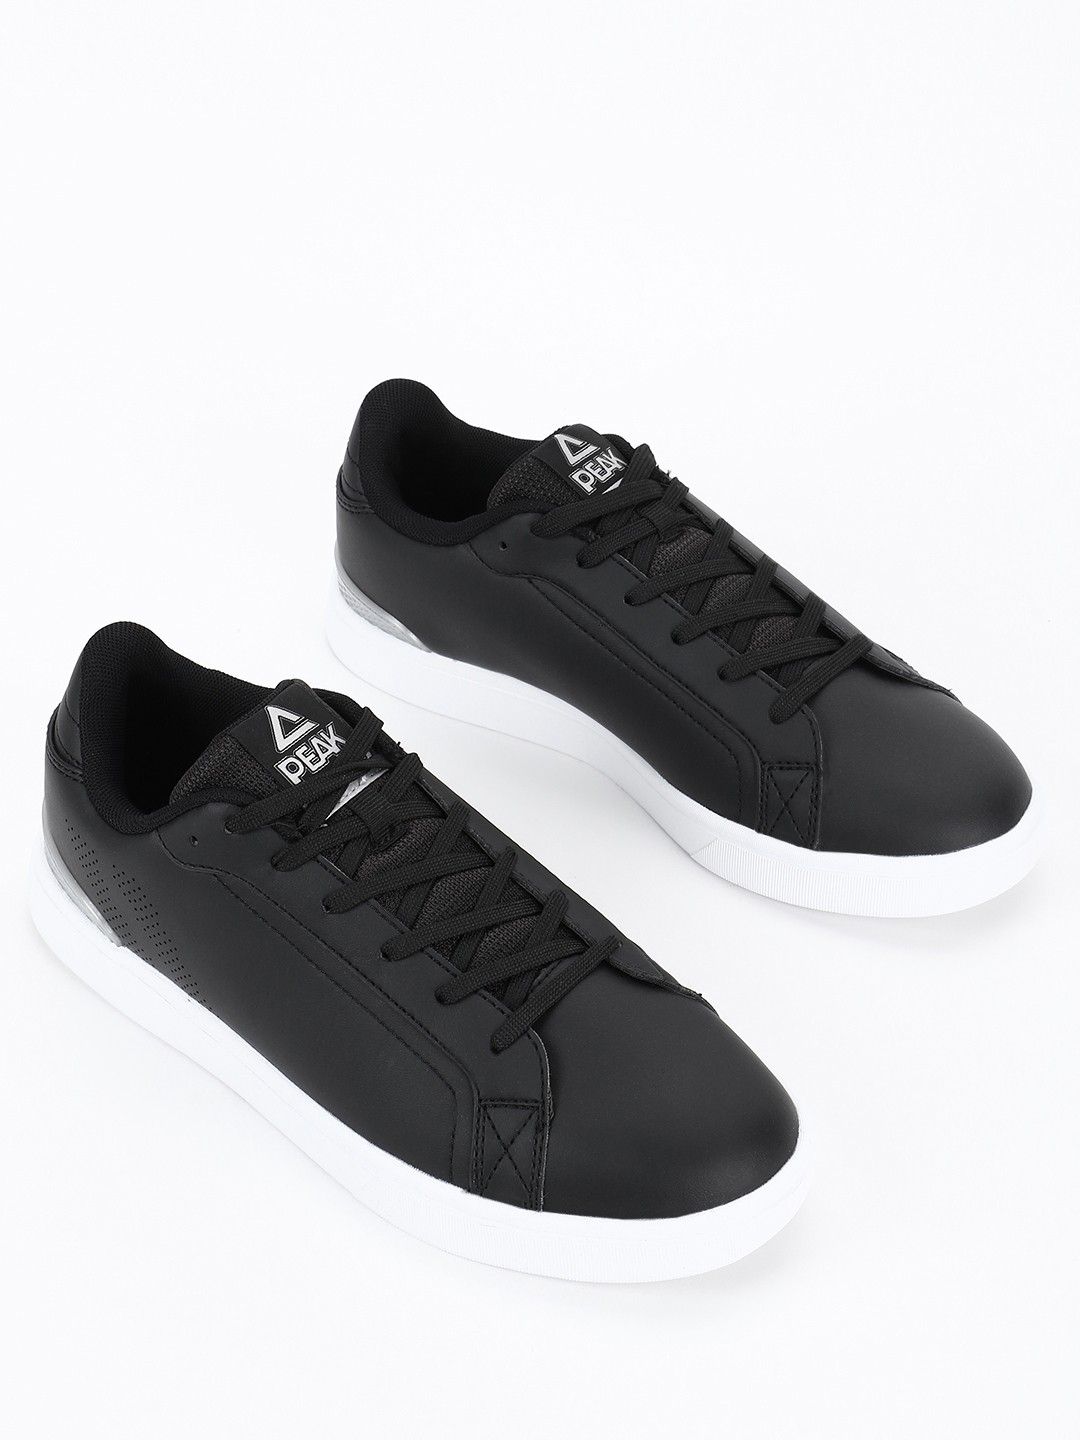 Peak Black Perforated Side Lace-Up Sneakers 1